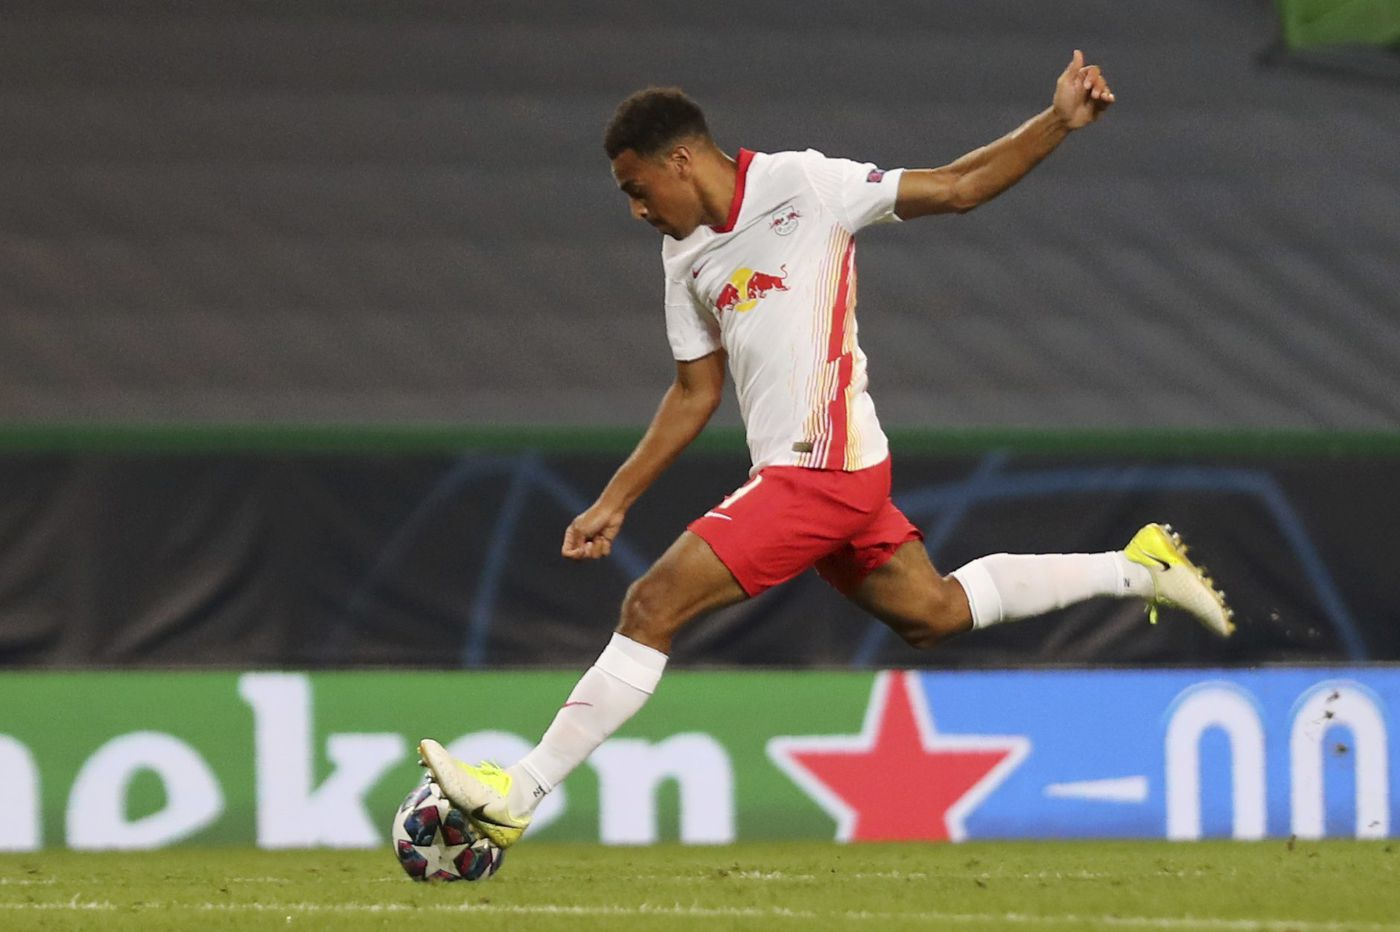 Soccer on TV: Champions League semifinals, MLS teams resume playing